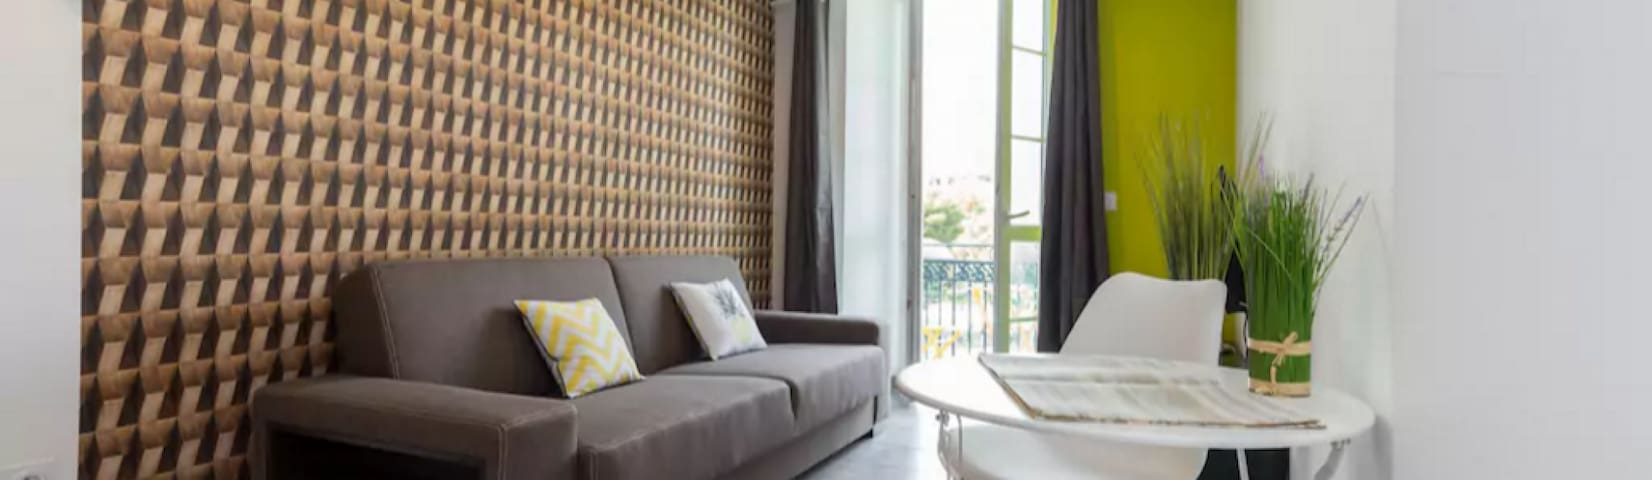 Separation Salon Chambre Studio airbnb®   nice - vacation rentals & places to stay